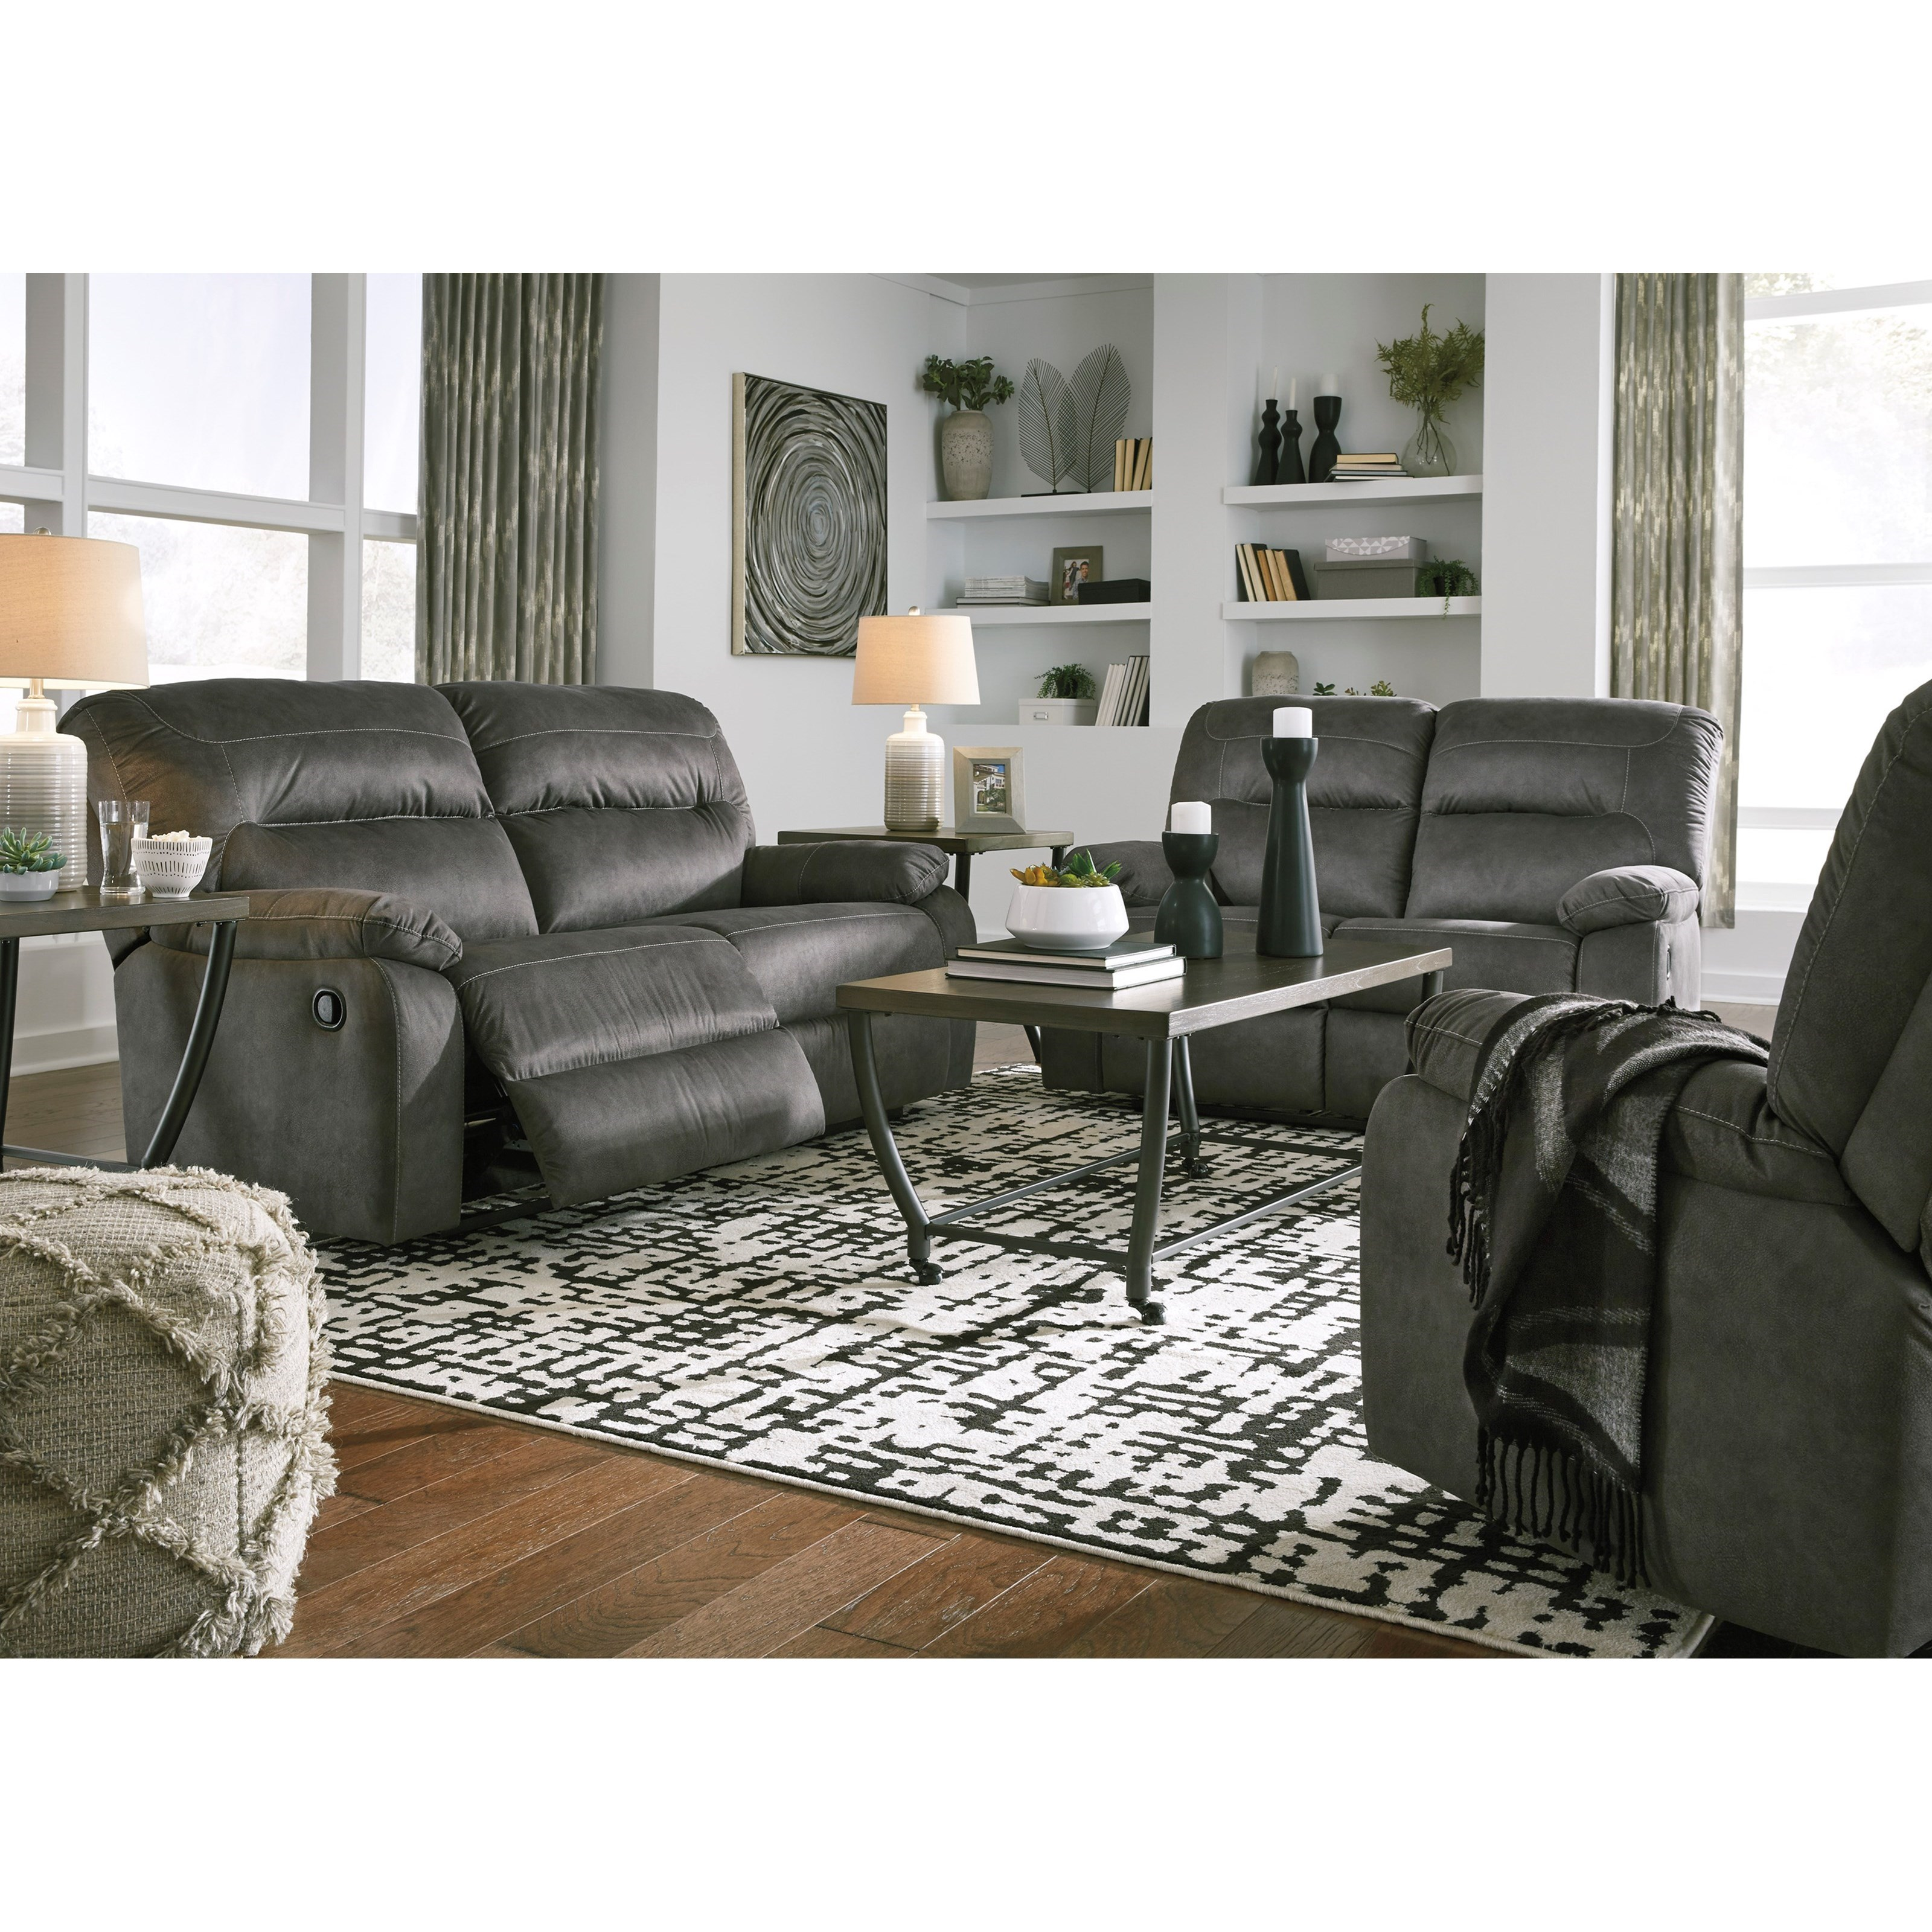 Bolzano Reclining Living Room Group by Benchcraft at Northeast Factory Direct